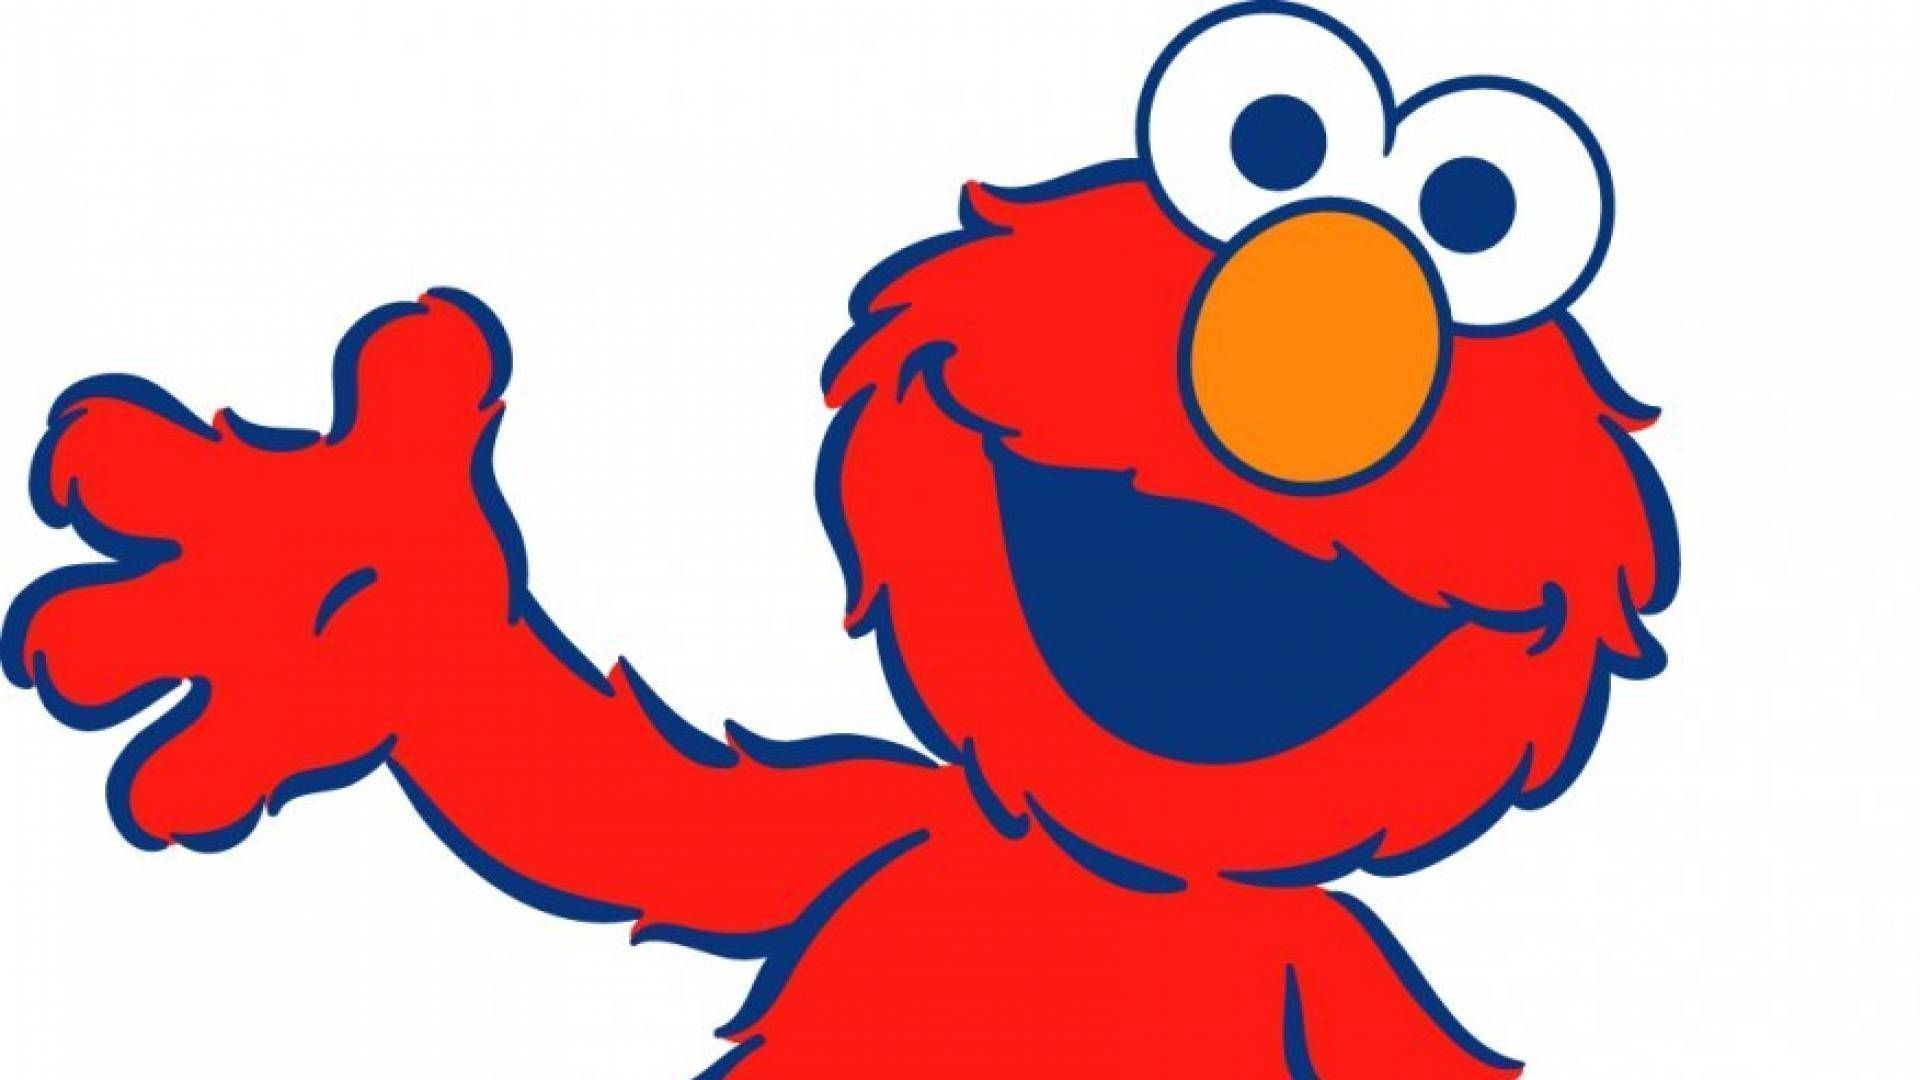 1920x1080 Top Gallery of Elmo Backgrounds:  px, Richie Soules – download free